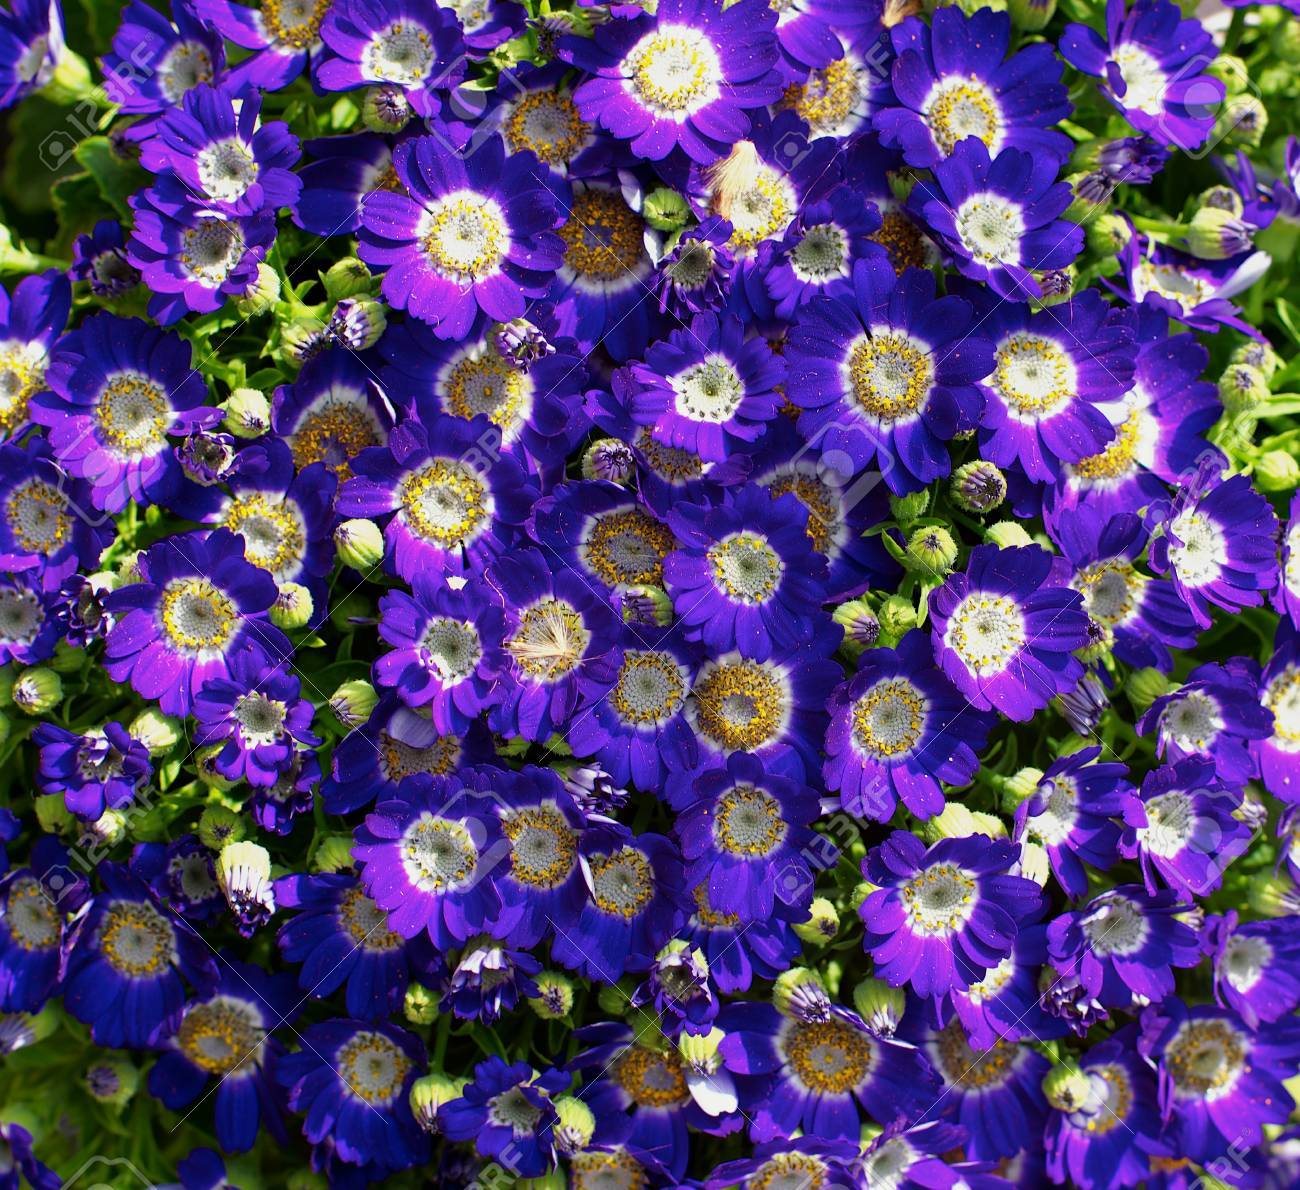 Background Of Purple Daisy Flower Heads With Yellow Pollen Closeup